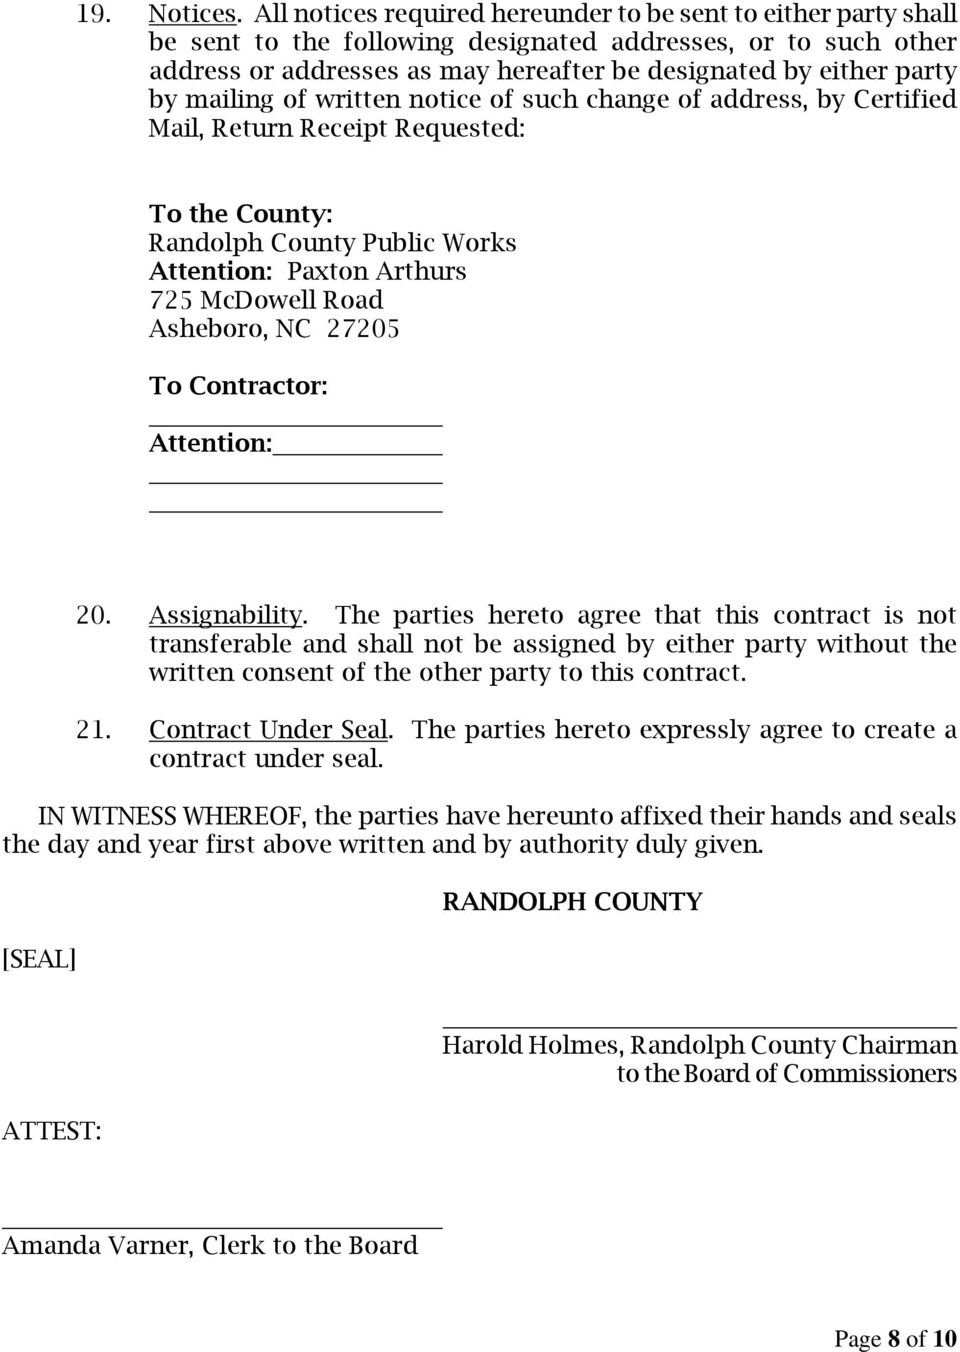 mailing of written notice of such change of address, by Certified Mail, Return Receipt Requested: To the County: Randolph County Public Works Attention: Paxton Arthurs 725 McDowell Road Asheboro, NC